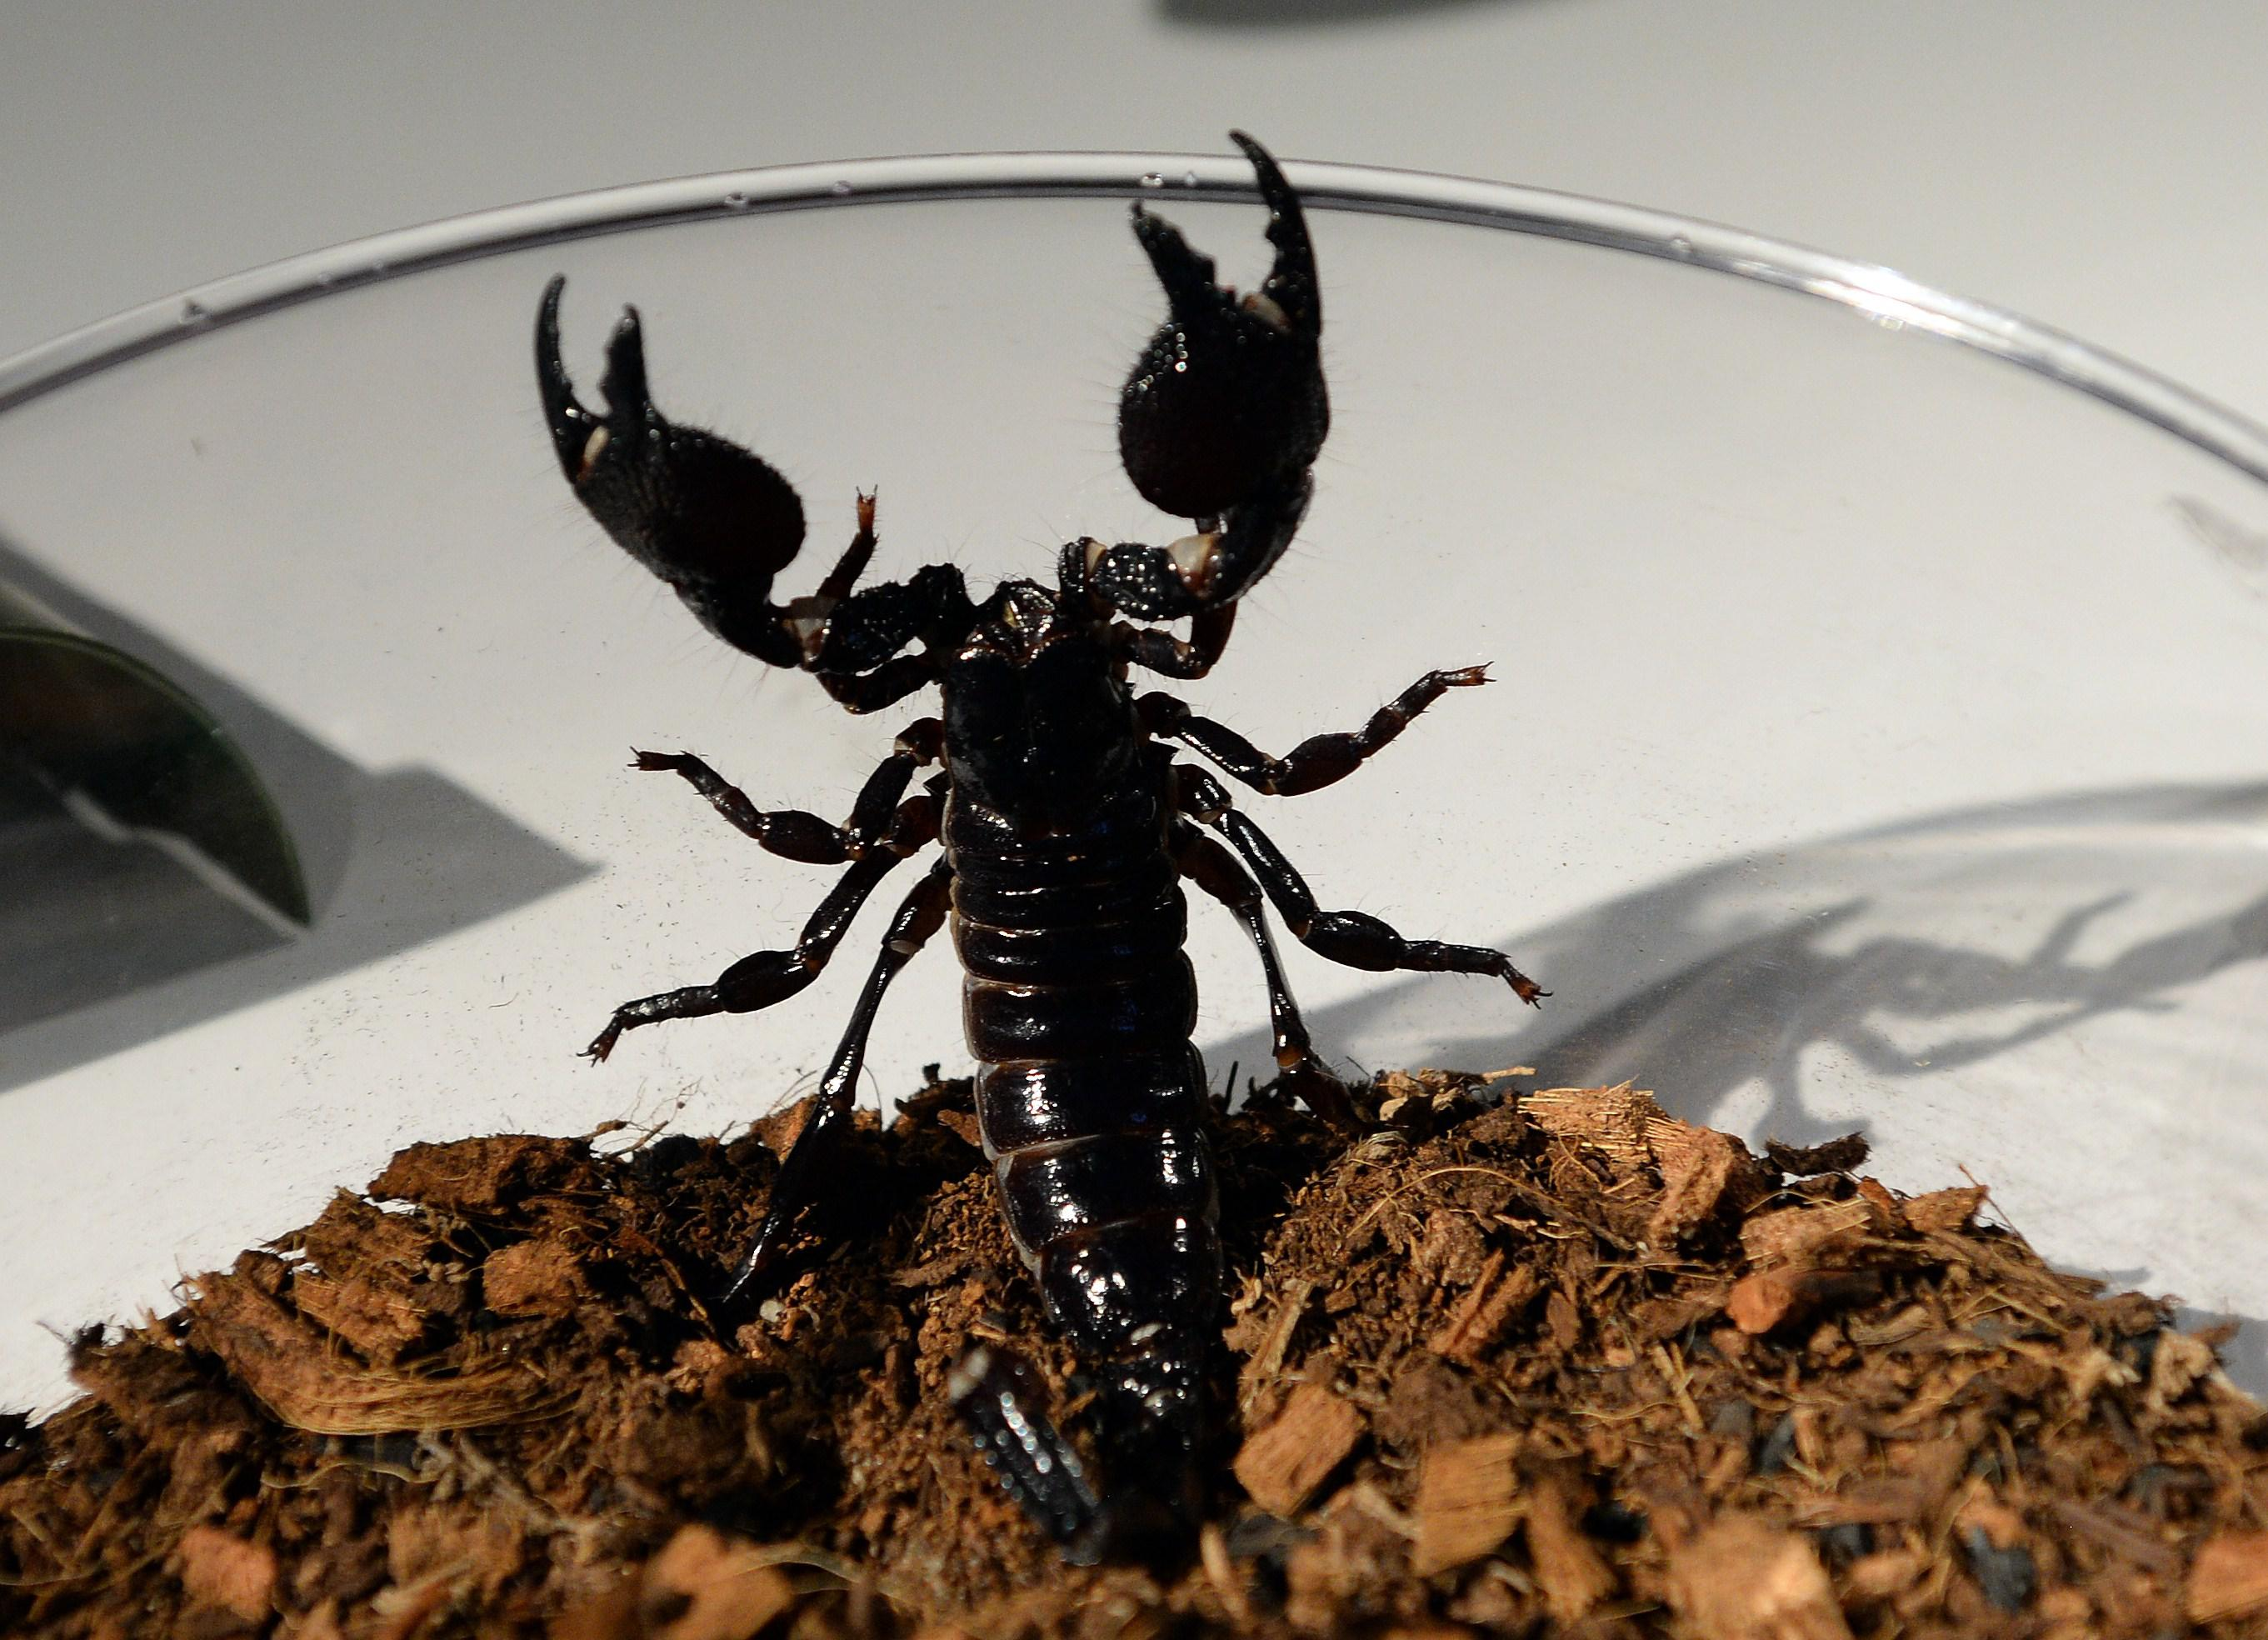 An emperor scorpion trying to escape a glass bowl.